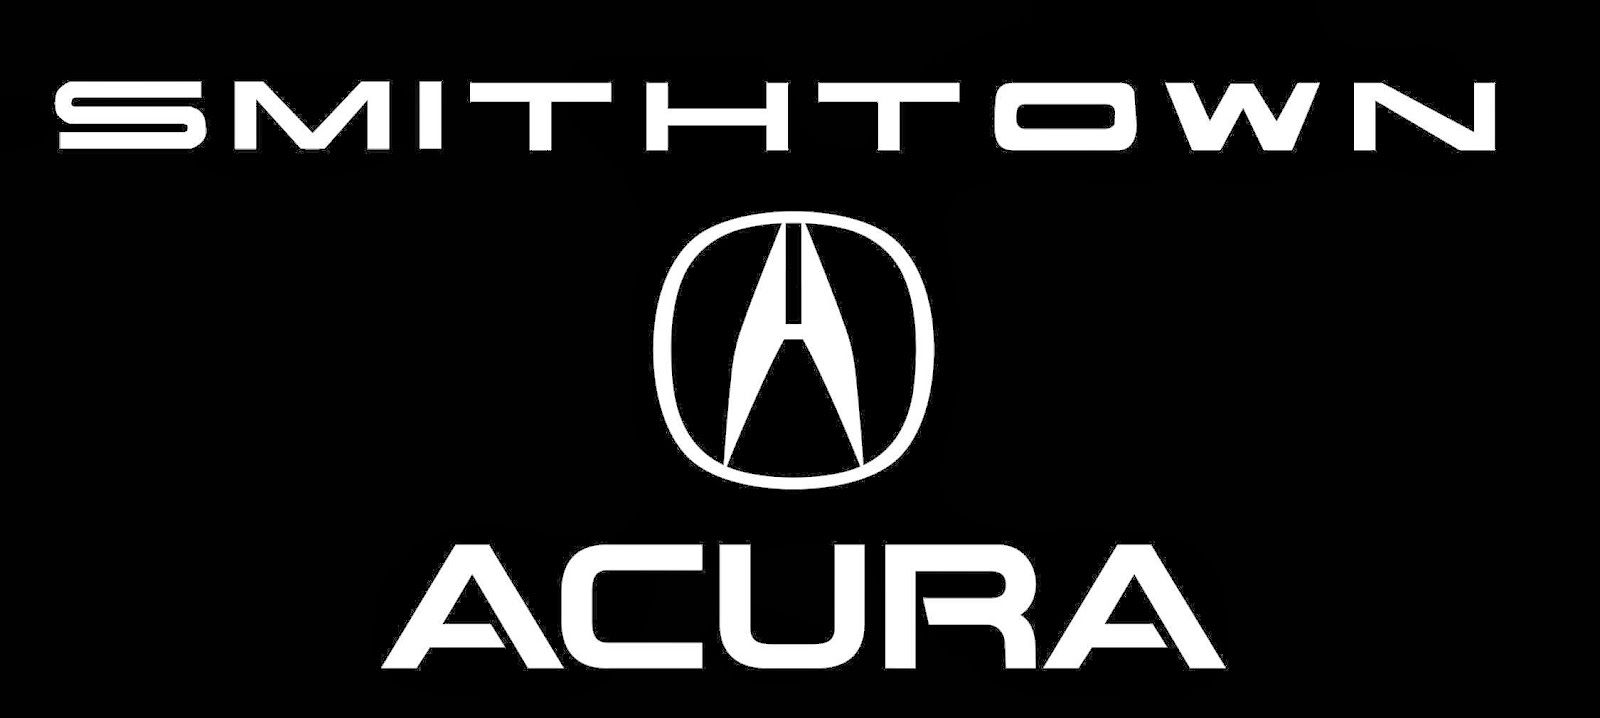 Smithtown Acura Village Connection Distribution Pinterest - Acura dealers on long island